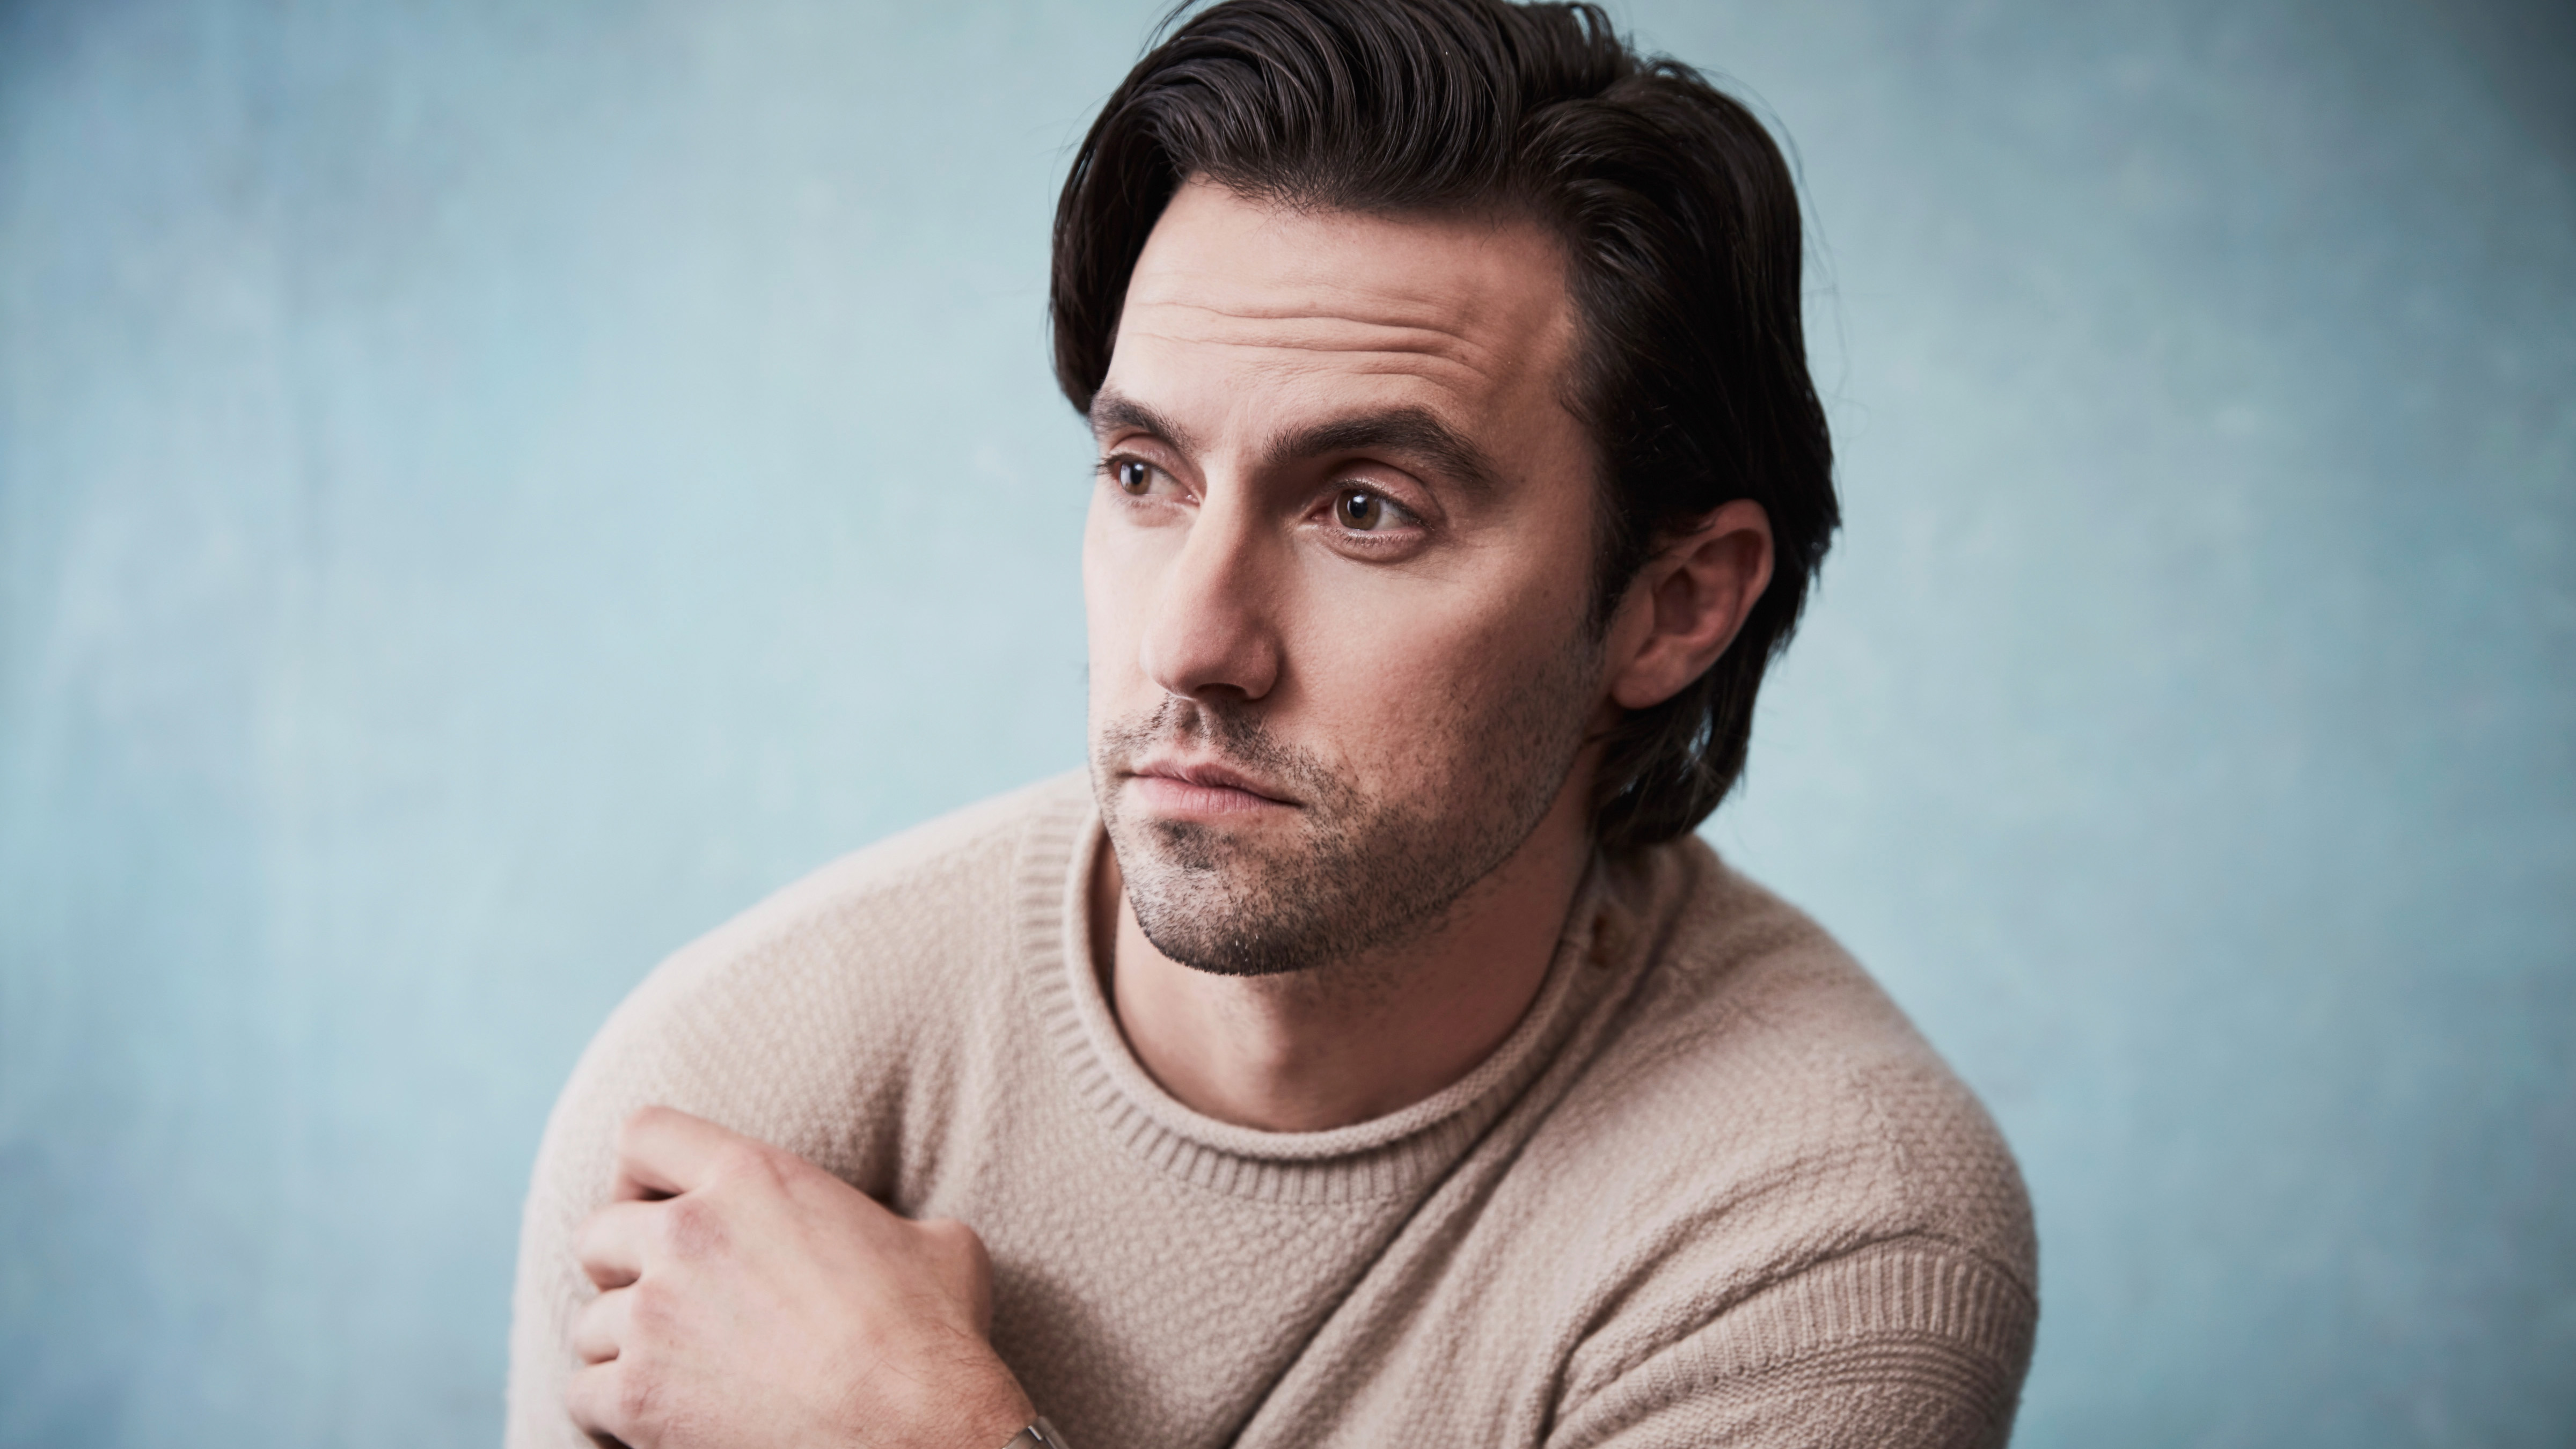 Milo Ventimiglia on His Ultimate Motorcycle Trip and What to Expect From the Next Season of This Is Us'